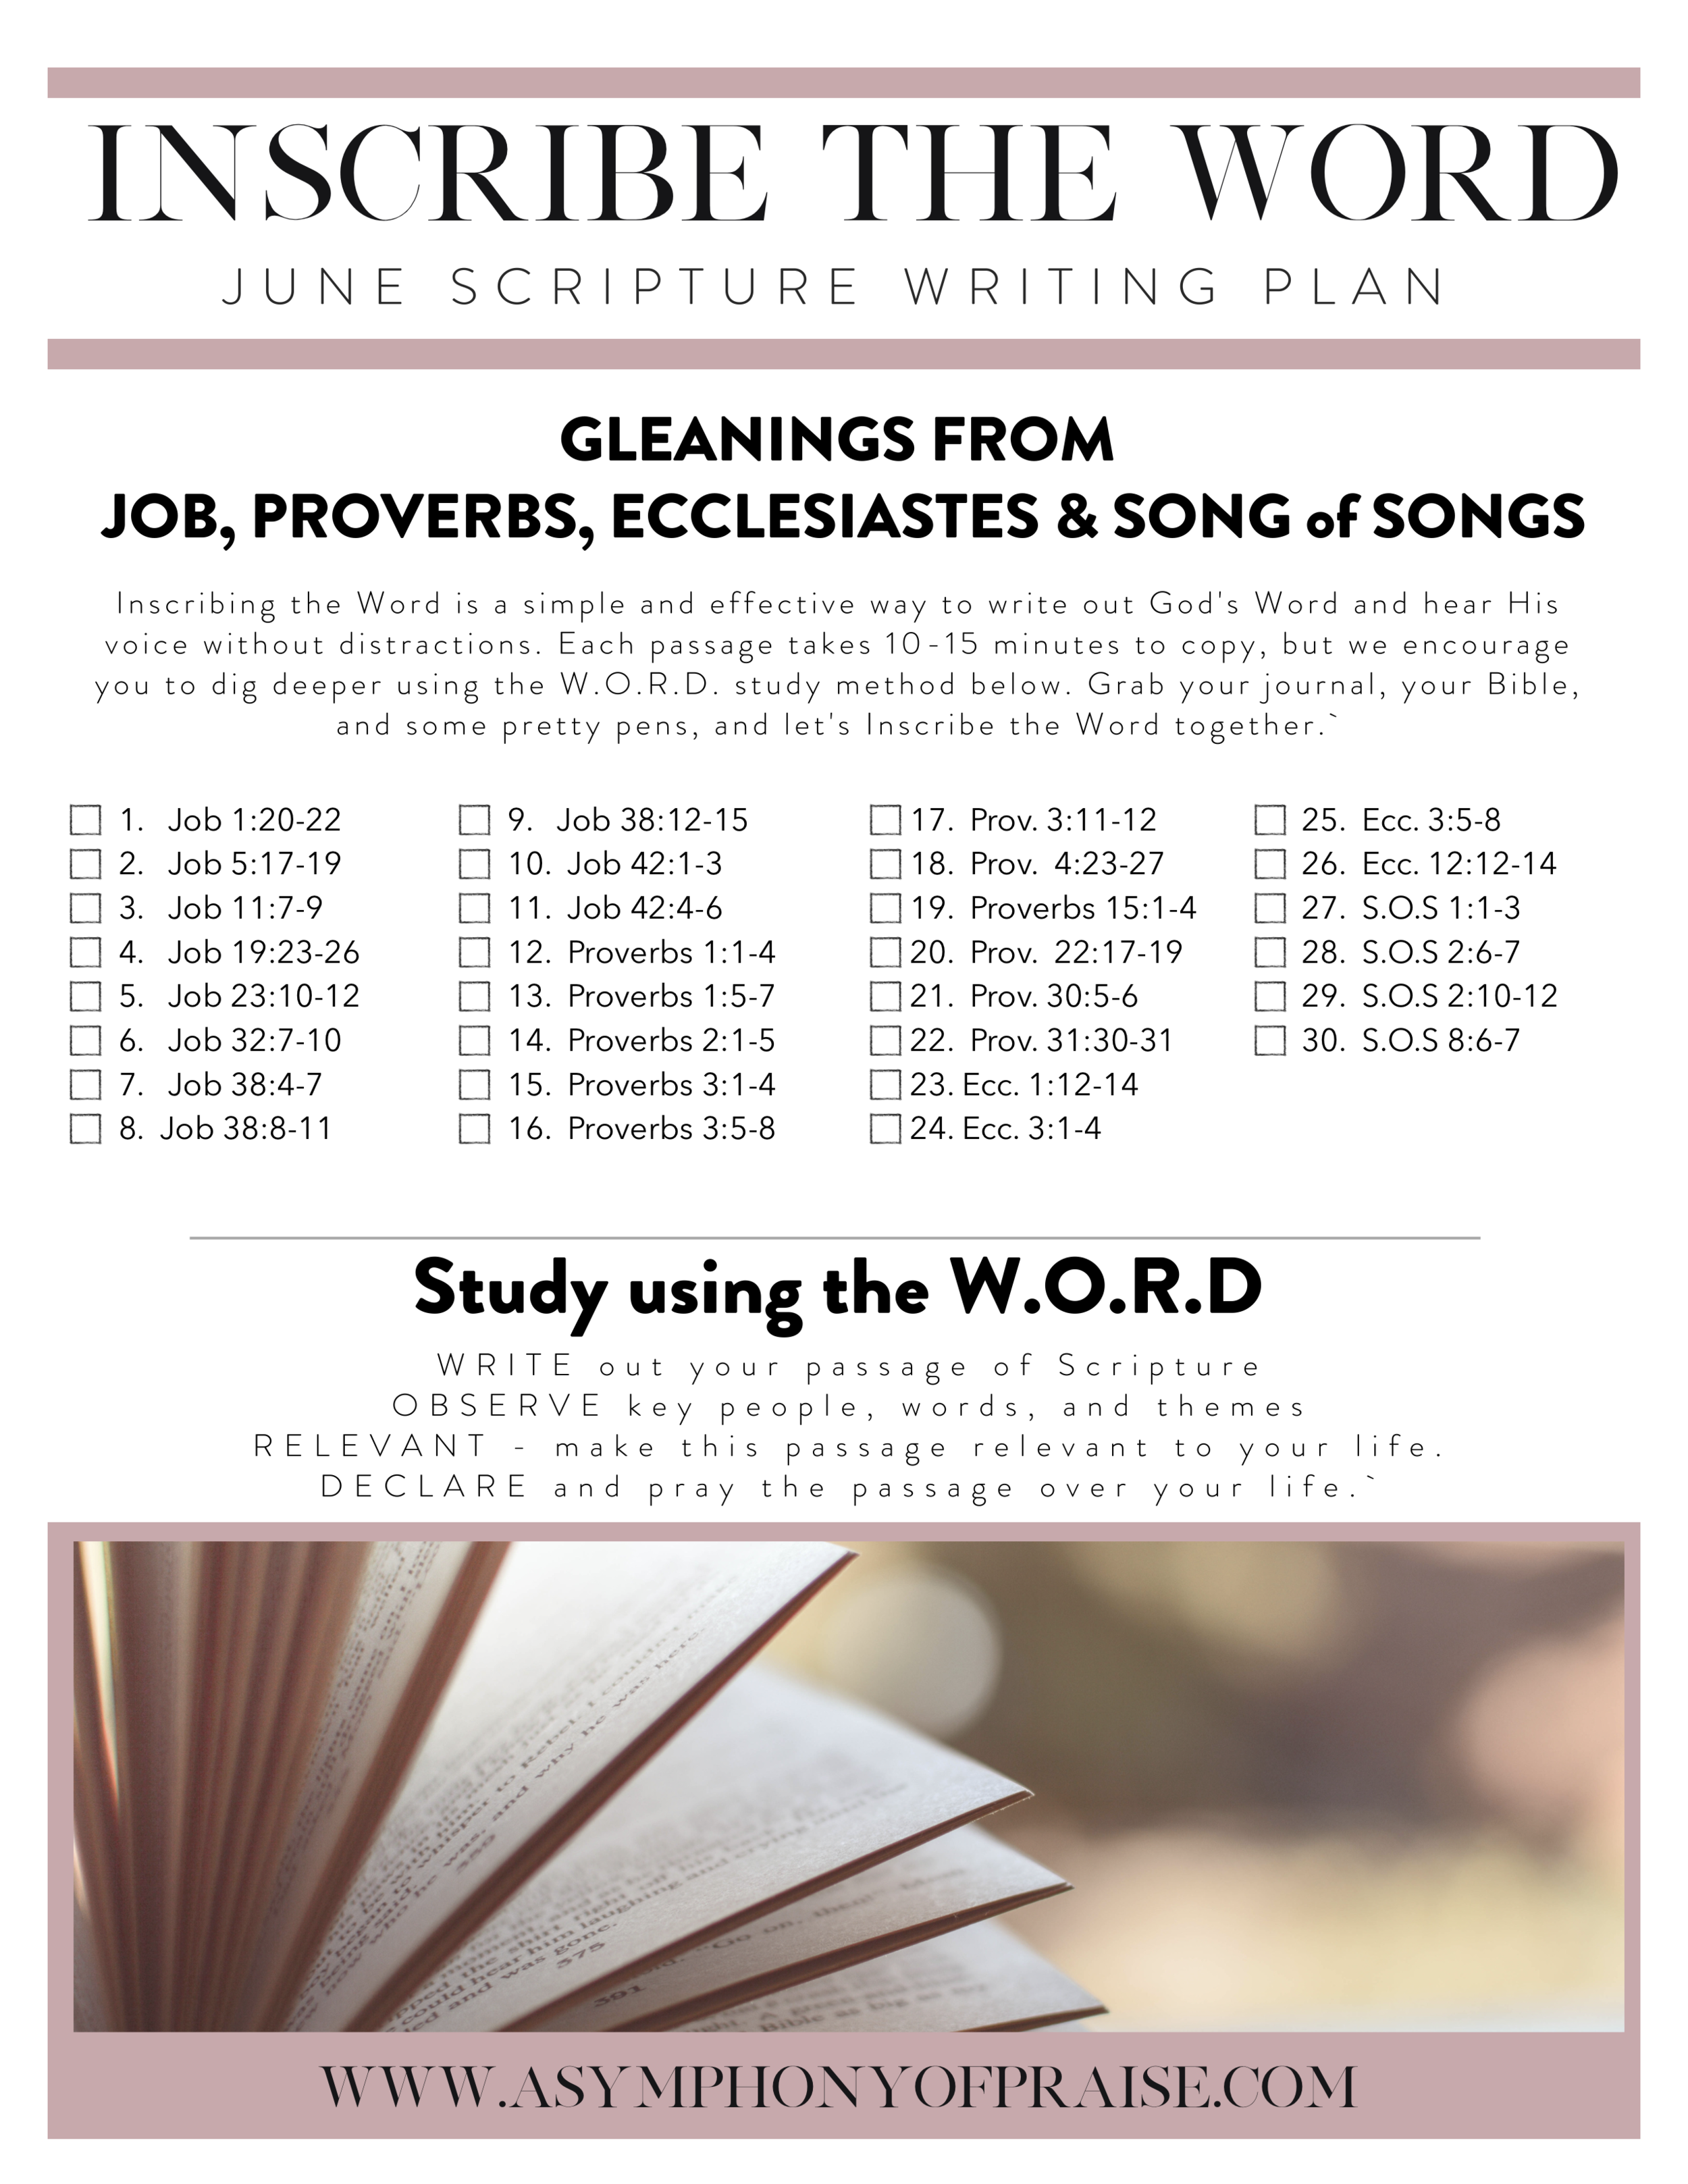 Inscribe the Word - June Scripture Writing Plan — Symphony